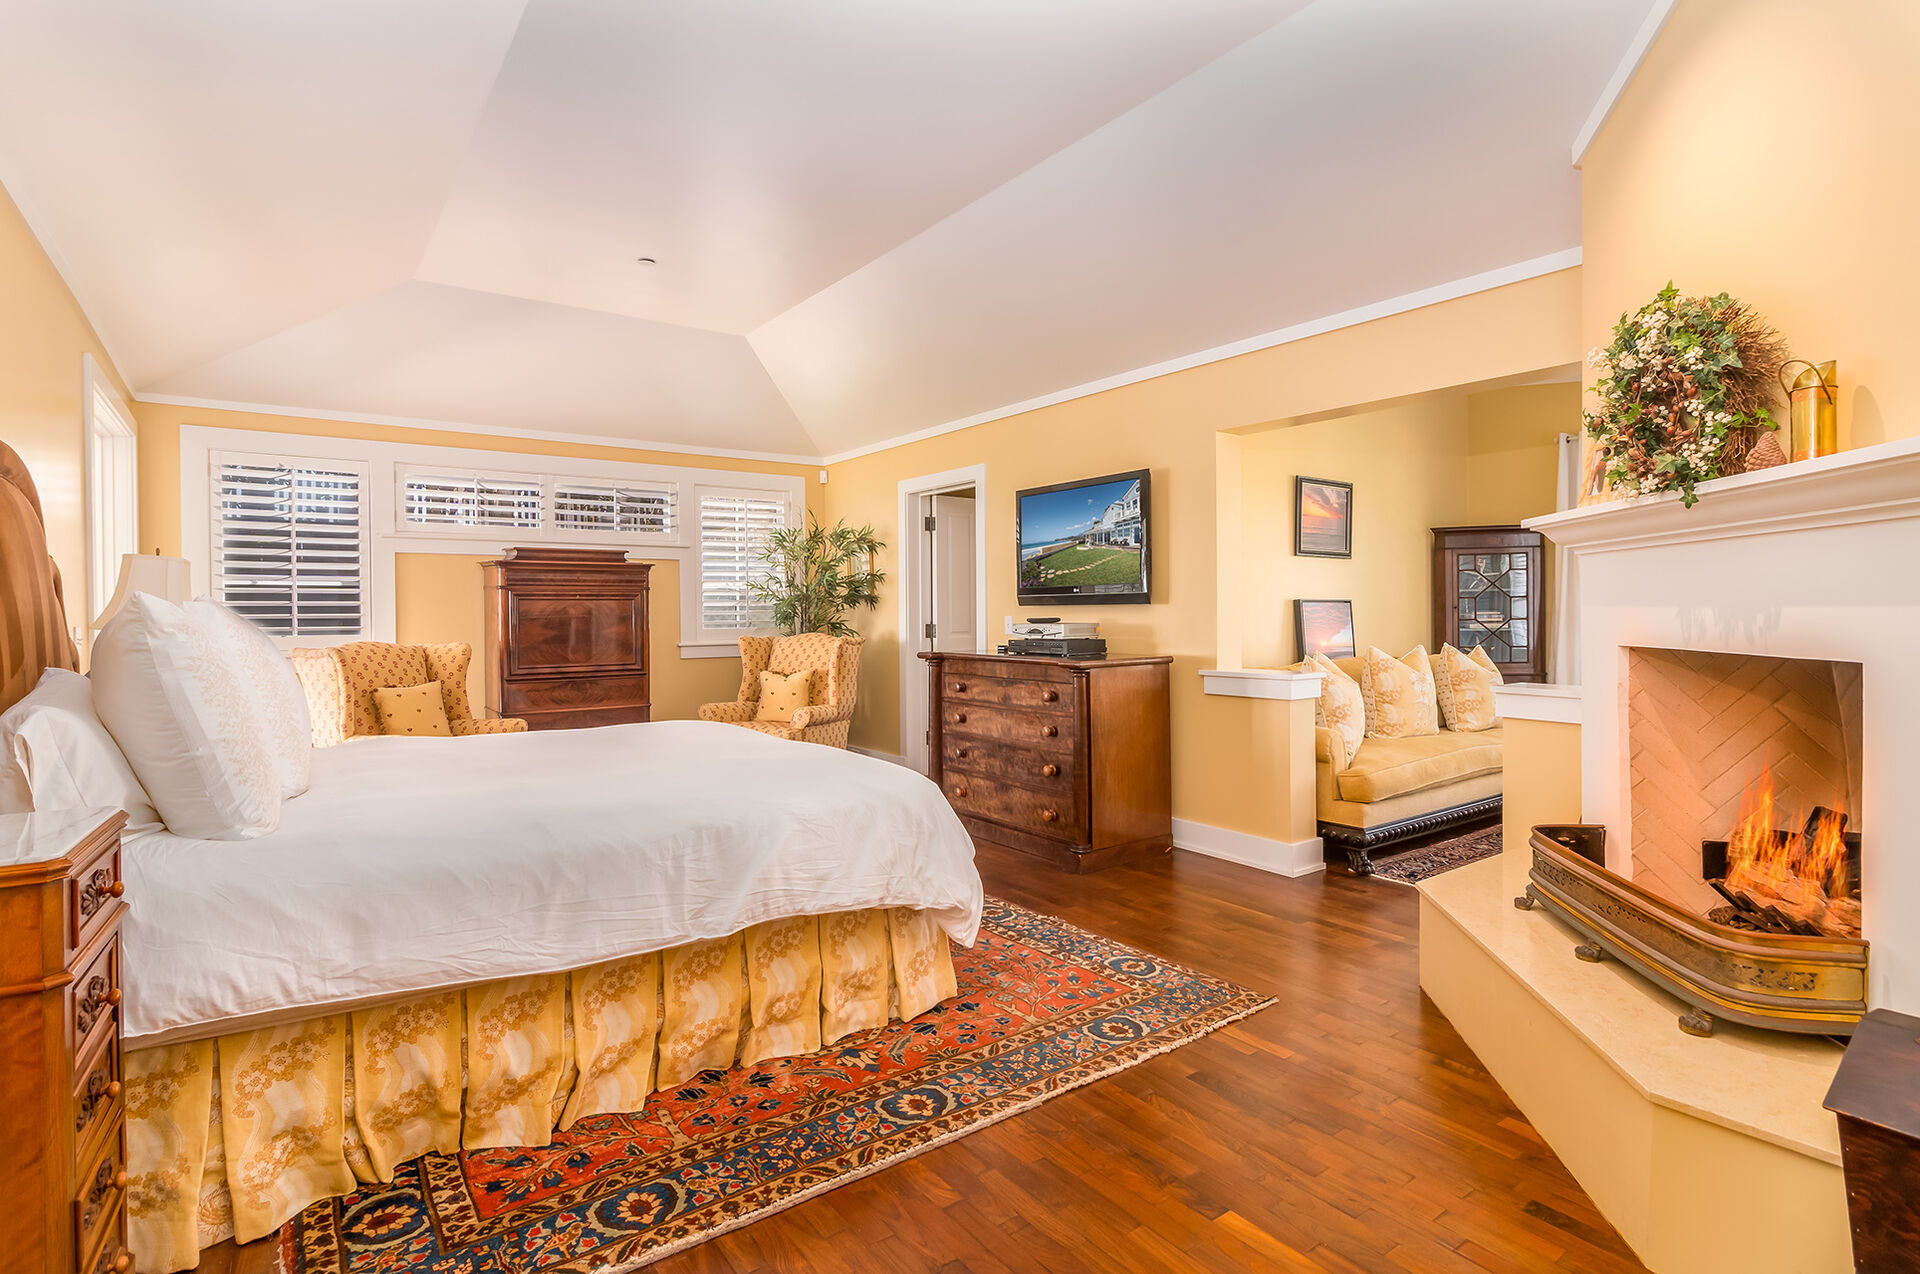 Downstairs master suite with King bed, flat screen TV, gas fireplace, double doors out to backyard and ocean views.